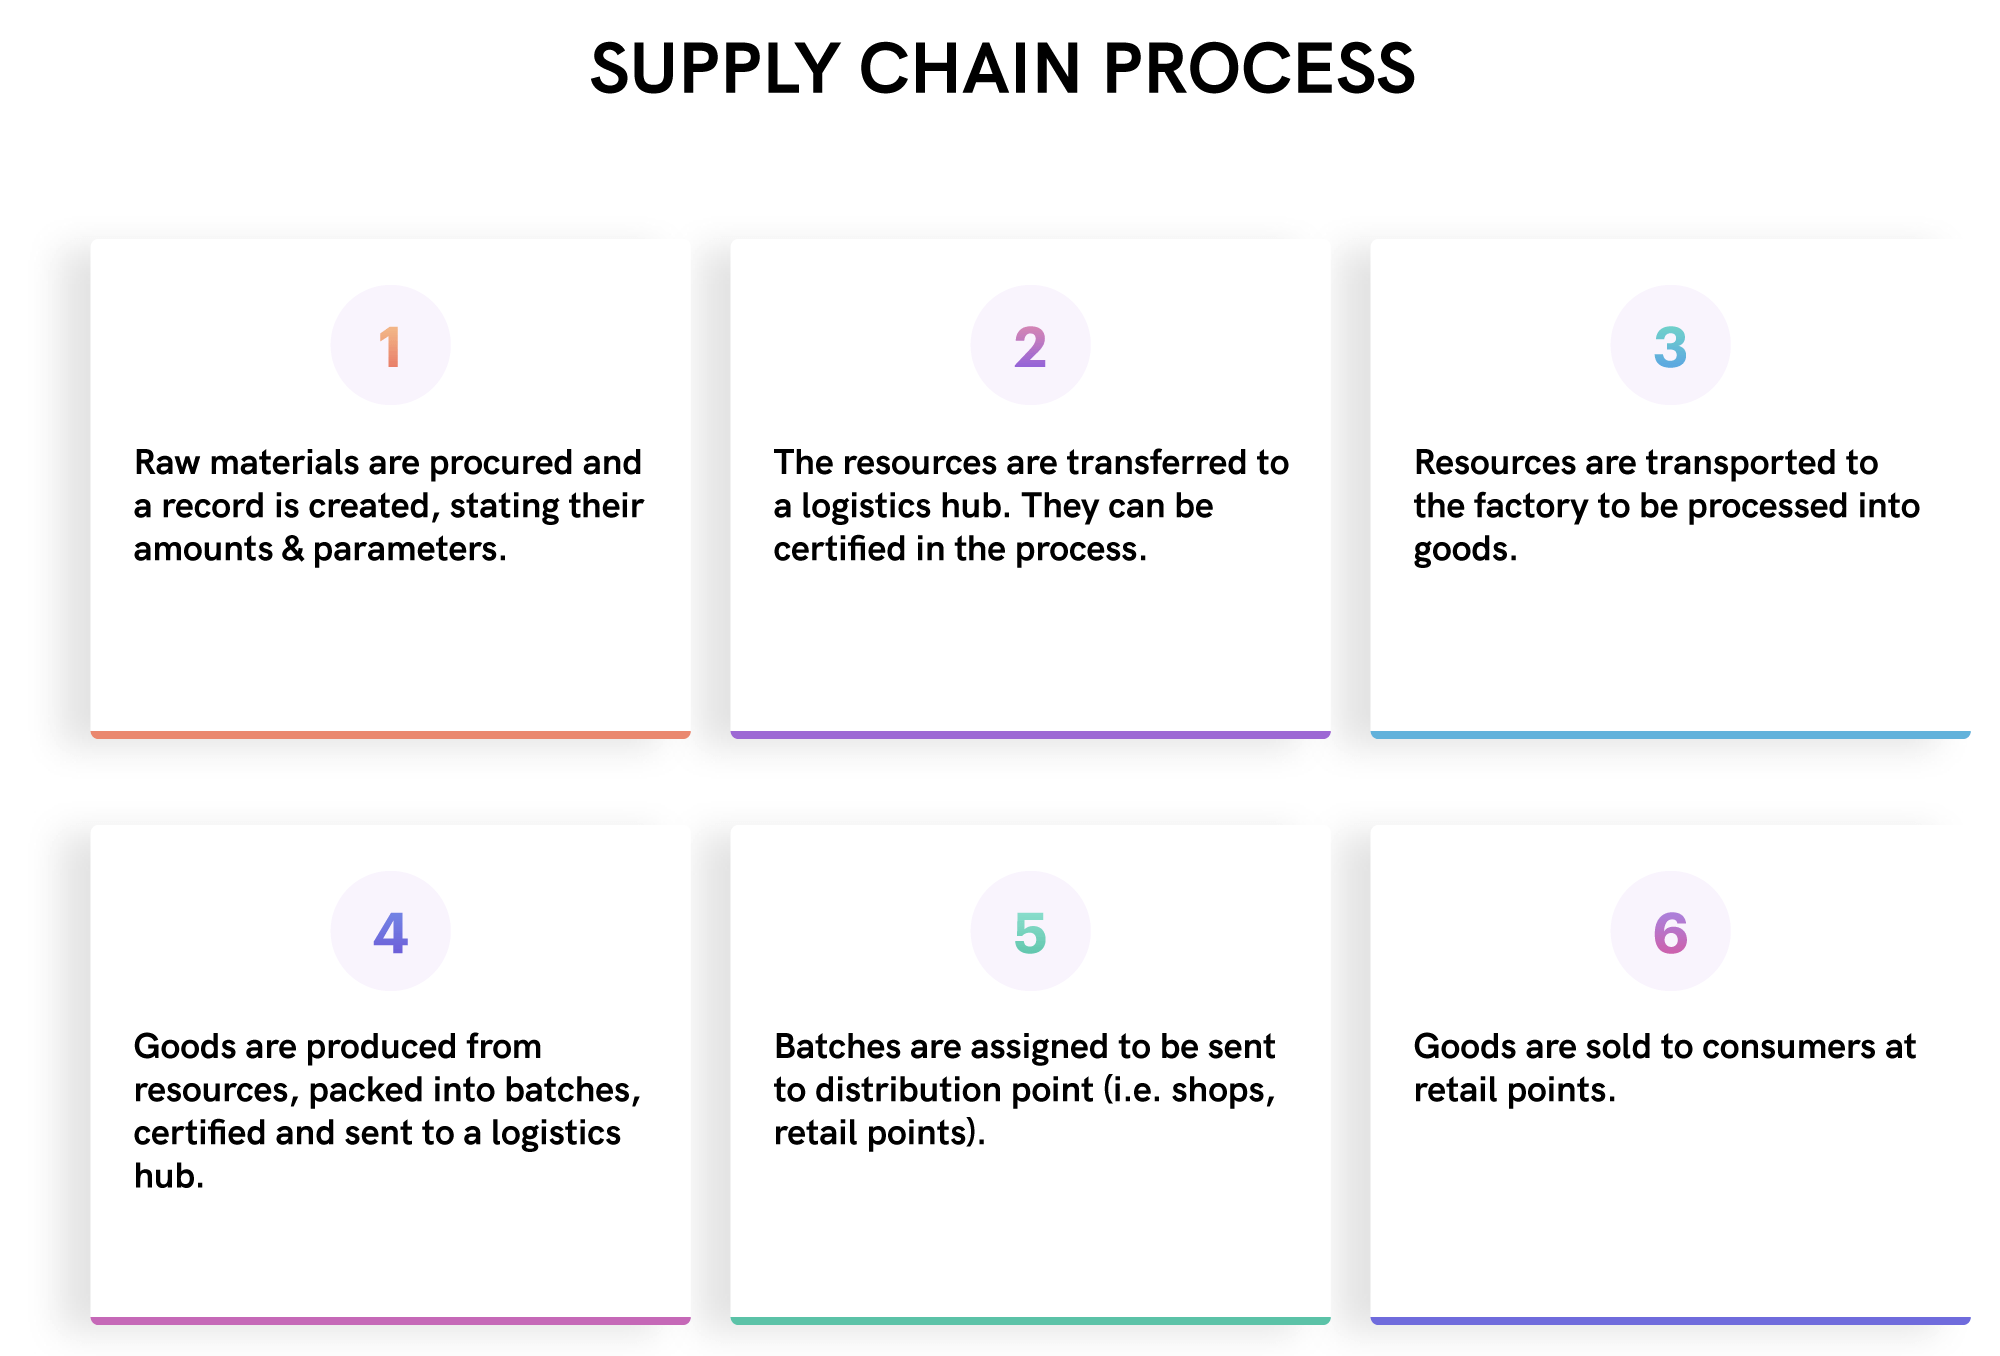 A scheme of the supply chain process